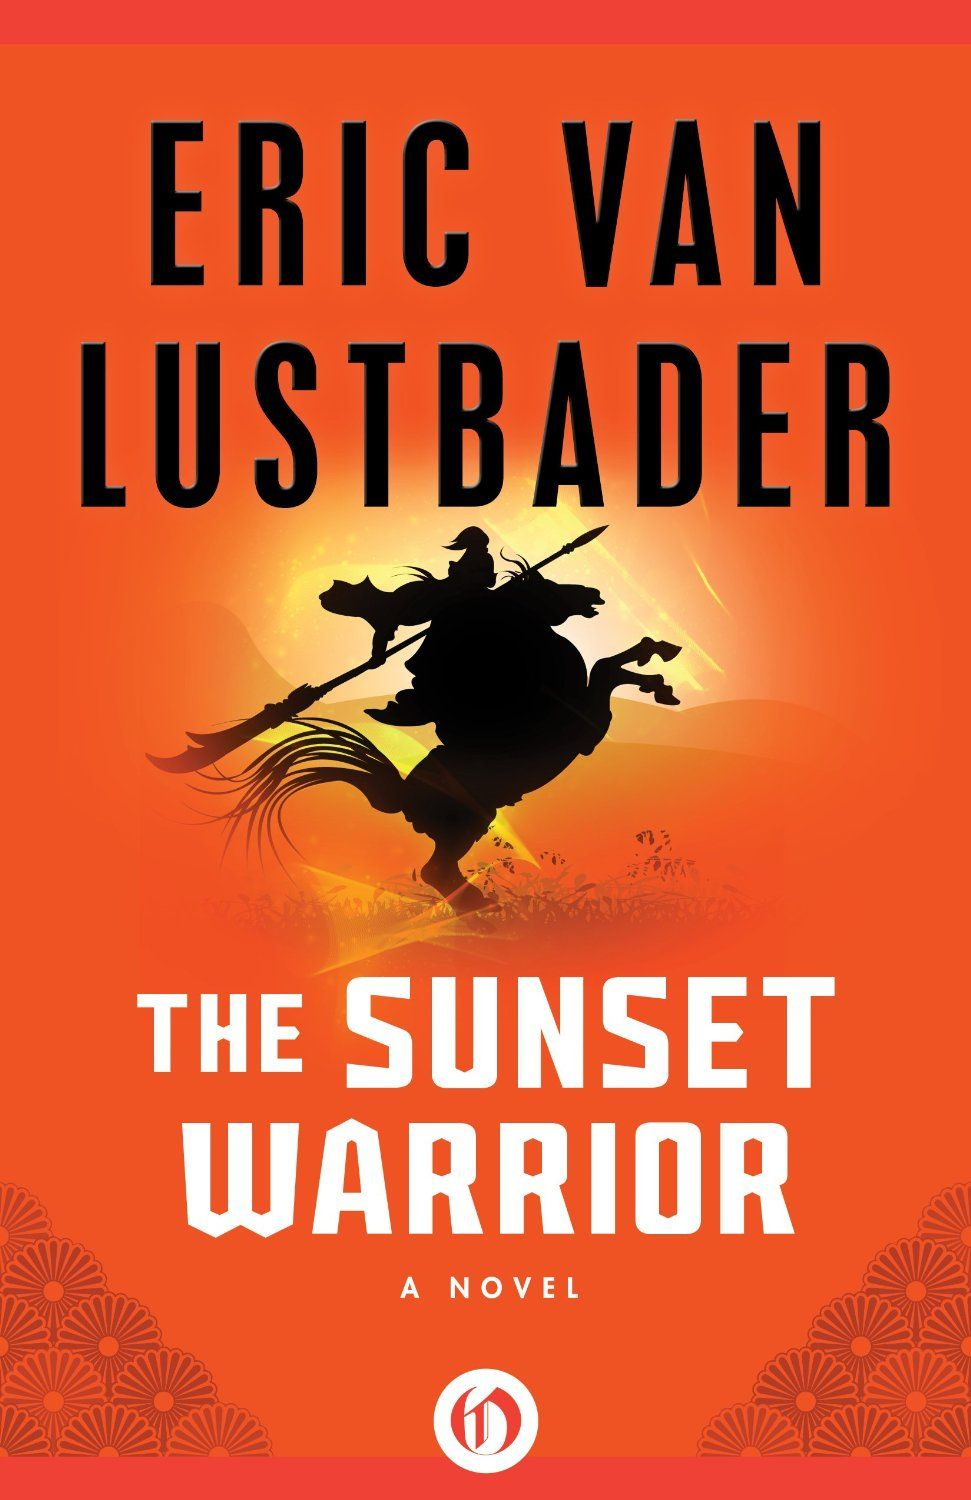 Amazon: The Sunset Warrior (the Sunset Warrior Cycle Book 1) Ebook